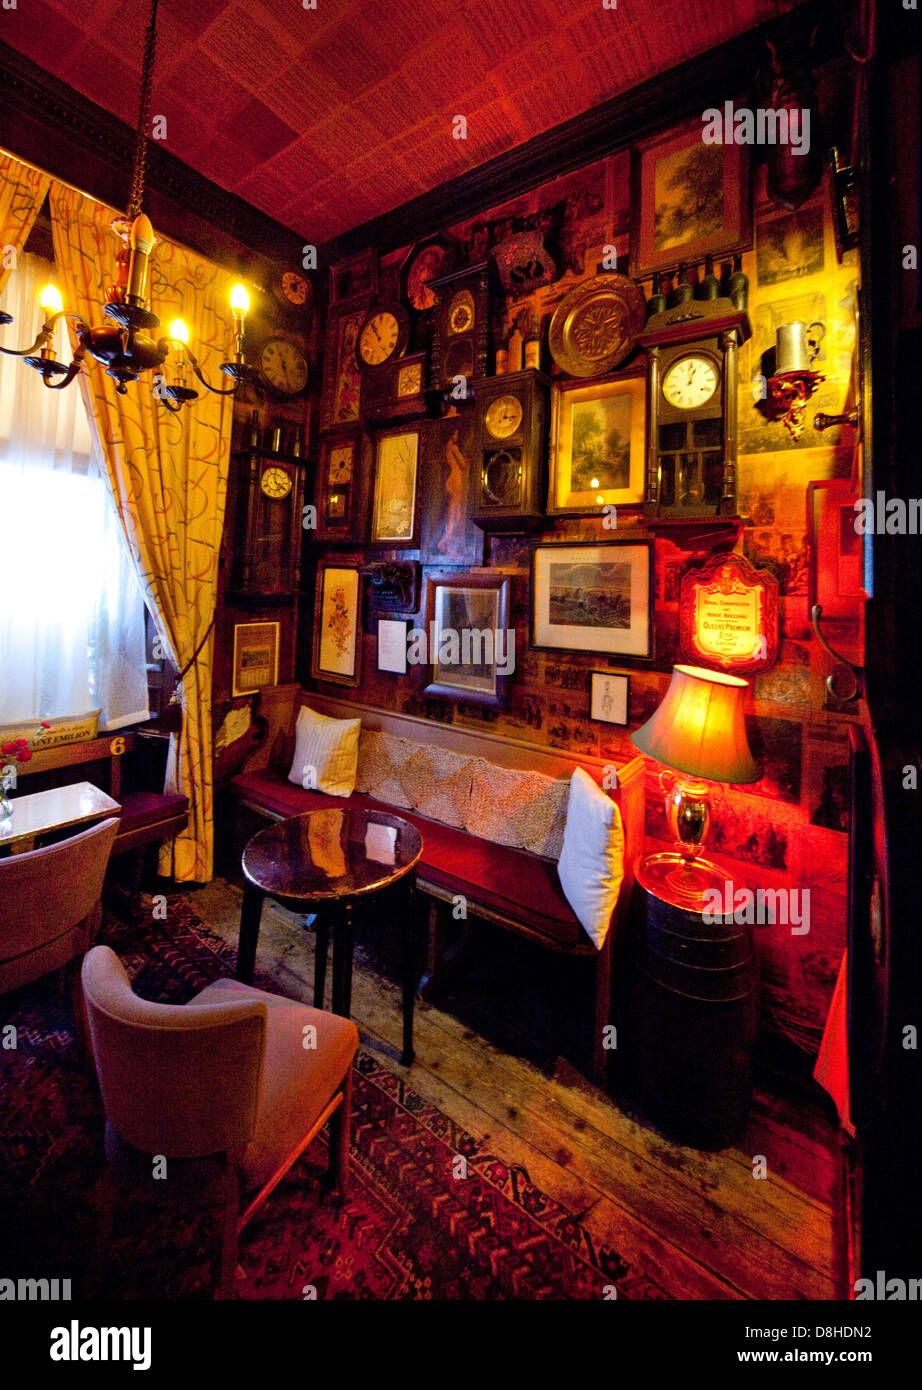 Interior, Canny Mans bar, 237 Morningside Rd, Edinburgh, Scotland, UK  EH10 4QU - Stock Image